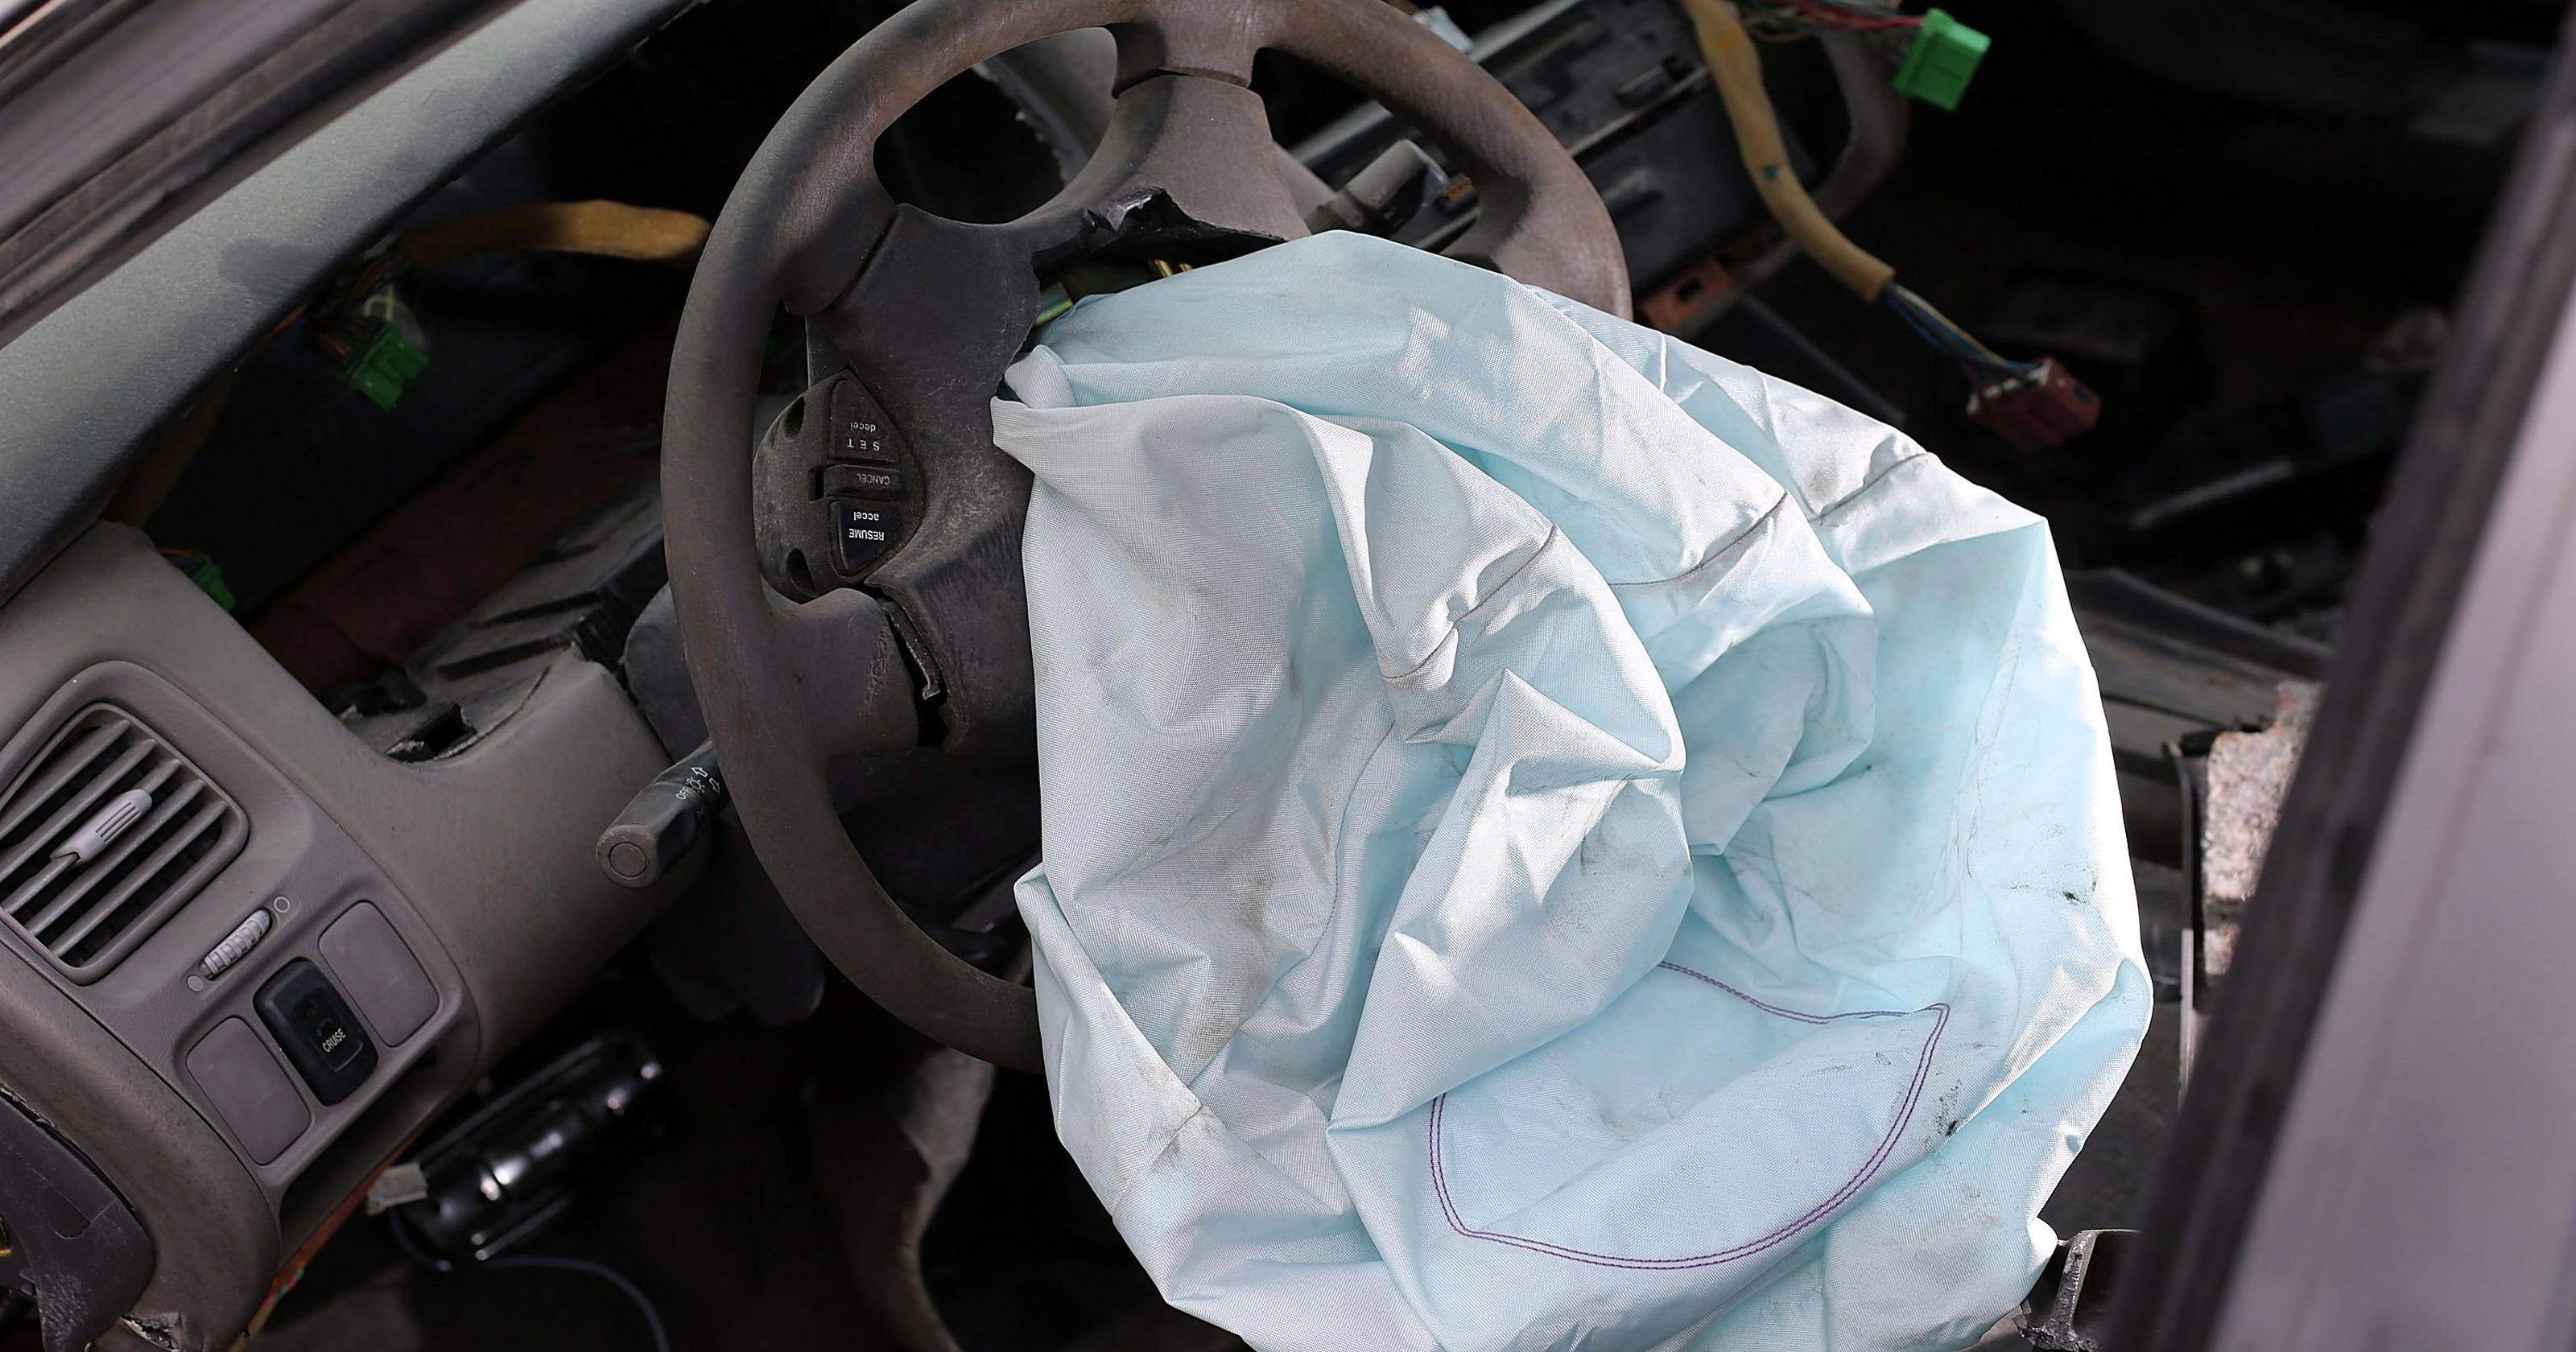 Automakers face class-action suit over faulty air bags